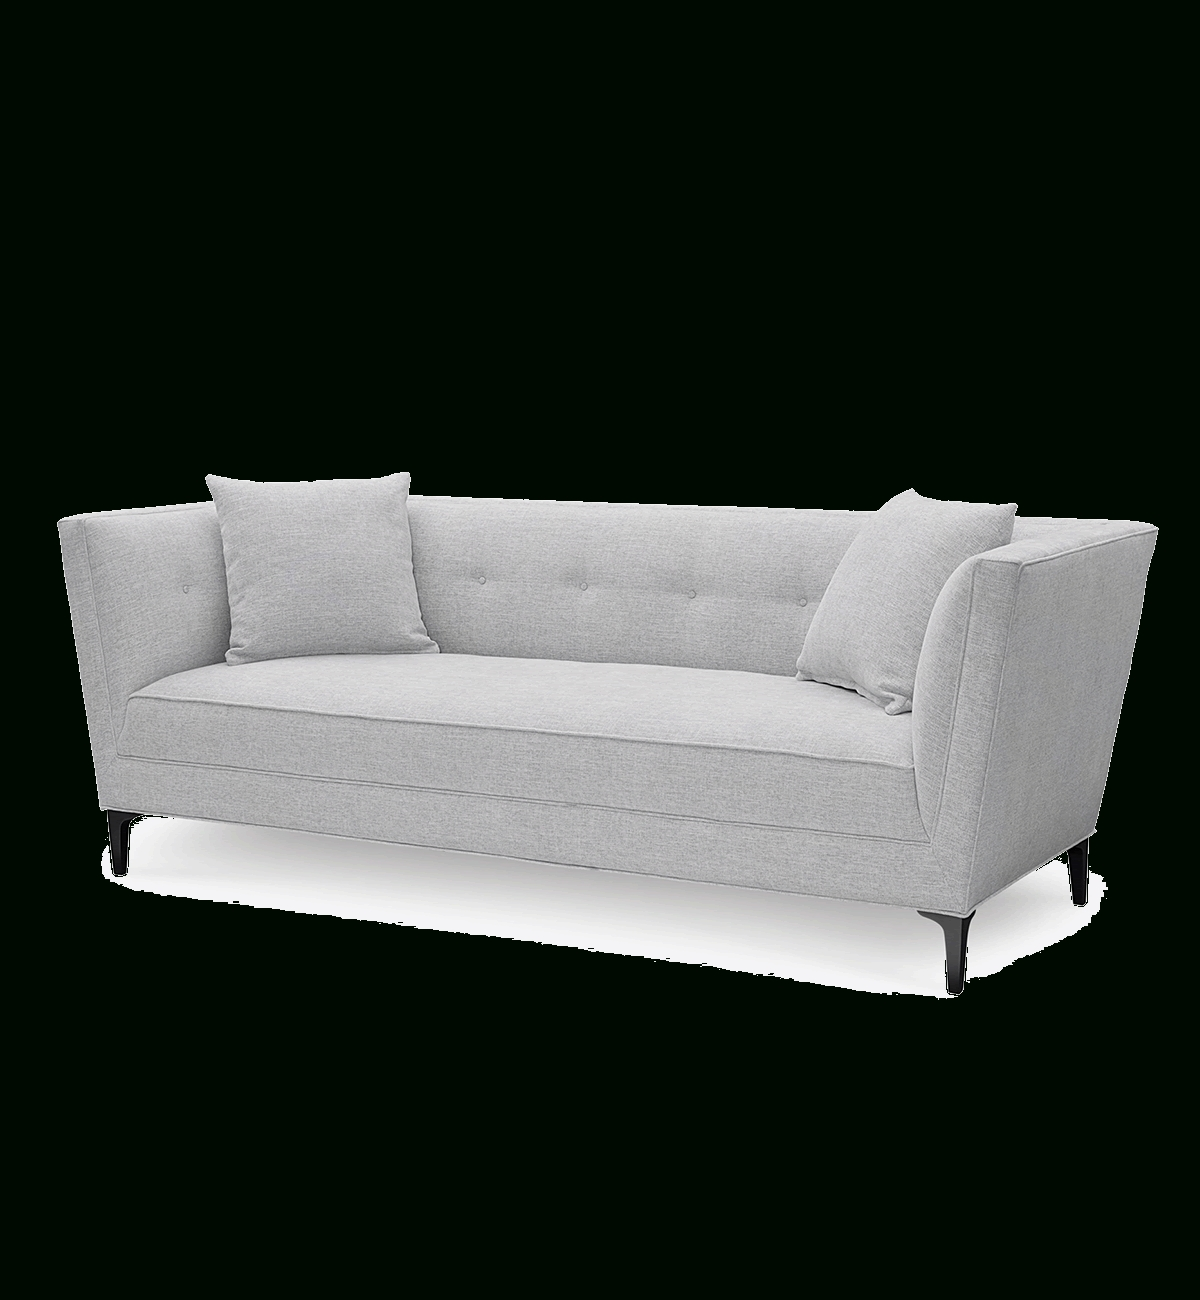 Popular Macys Leather Sofas In Leather Couches And Sofas – Macy's (View 1 of 15)